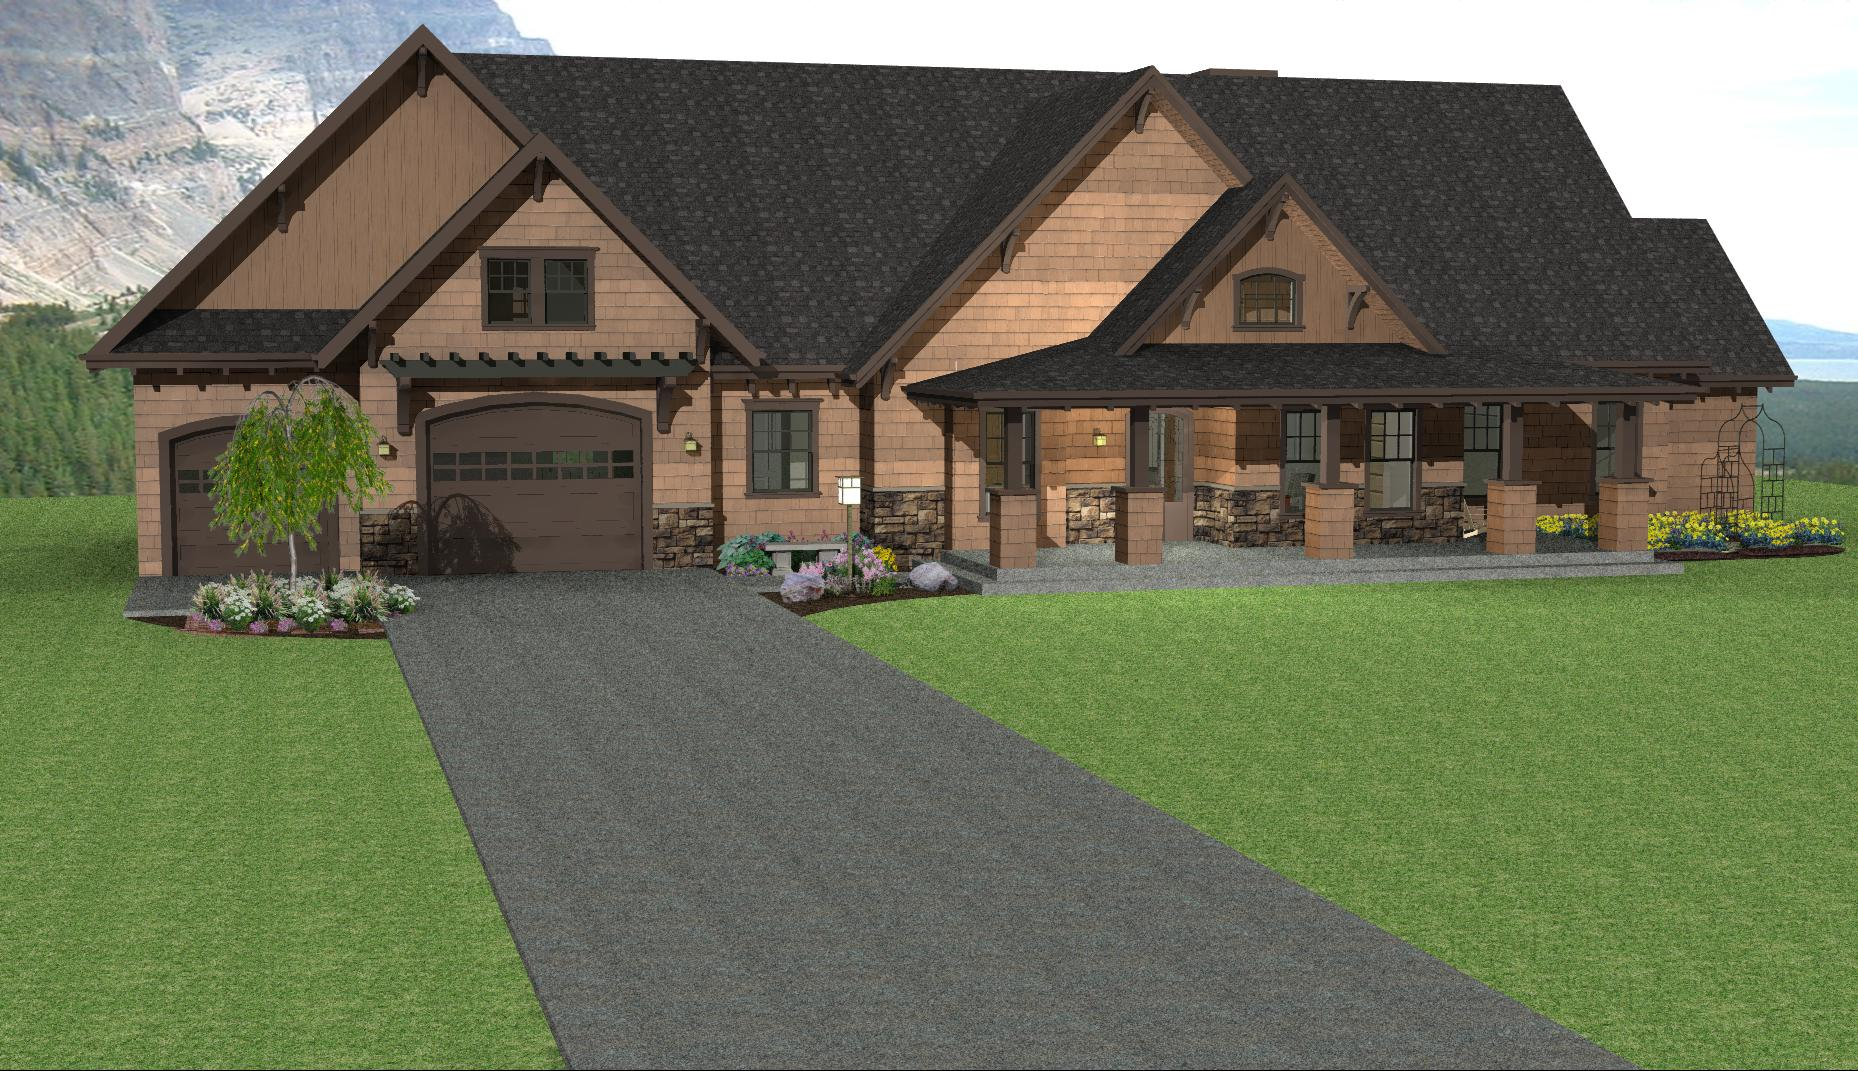 Ranch style home designs find house plans for Find house blueprints